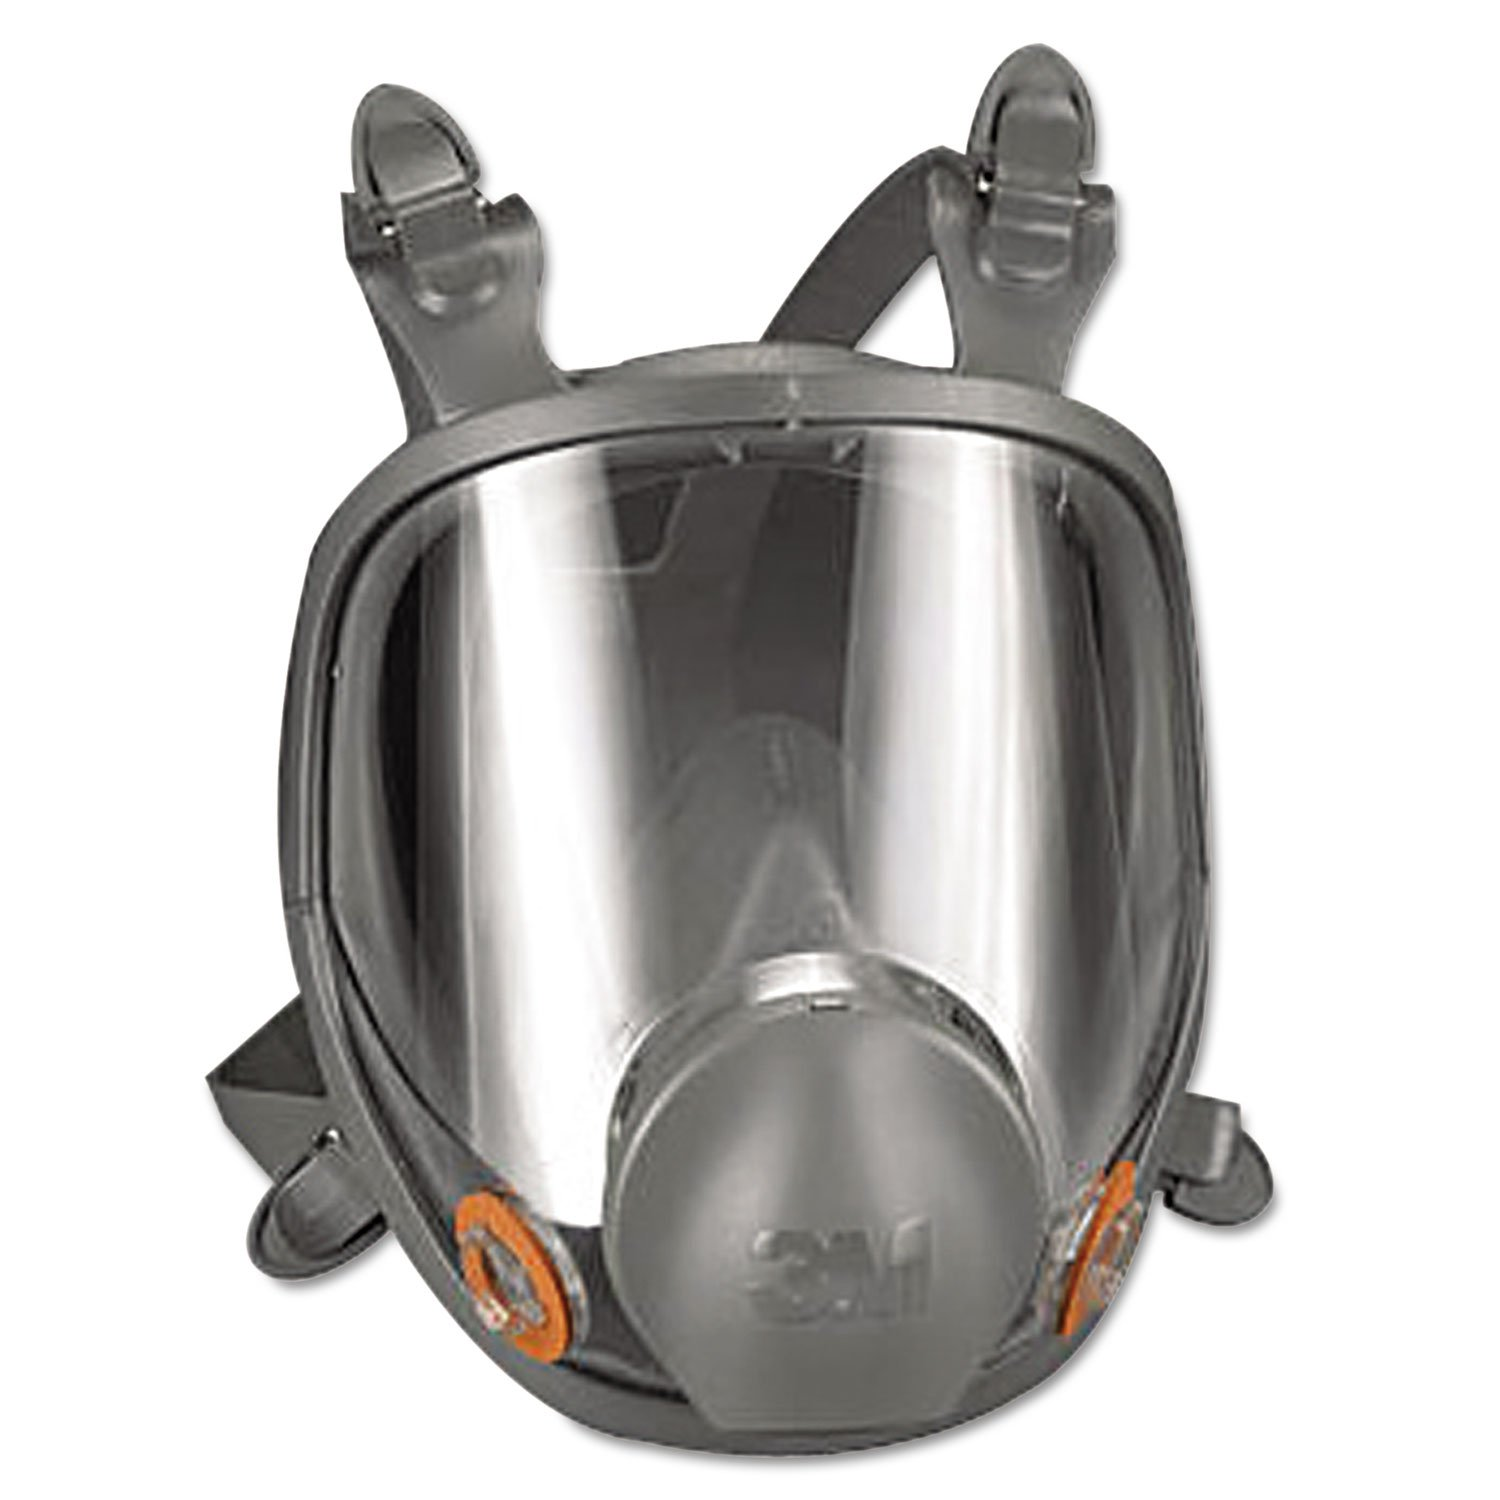 3M Safety 142-6800 Safety Reusable Full Face Mask Respirator, Grey, Medium